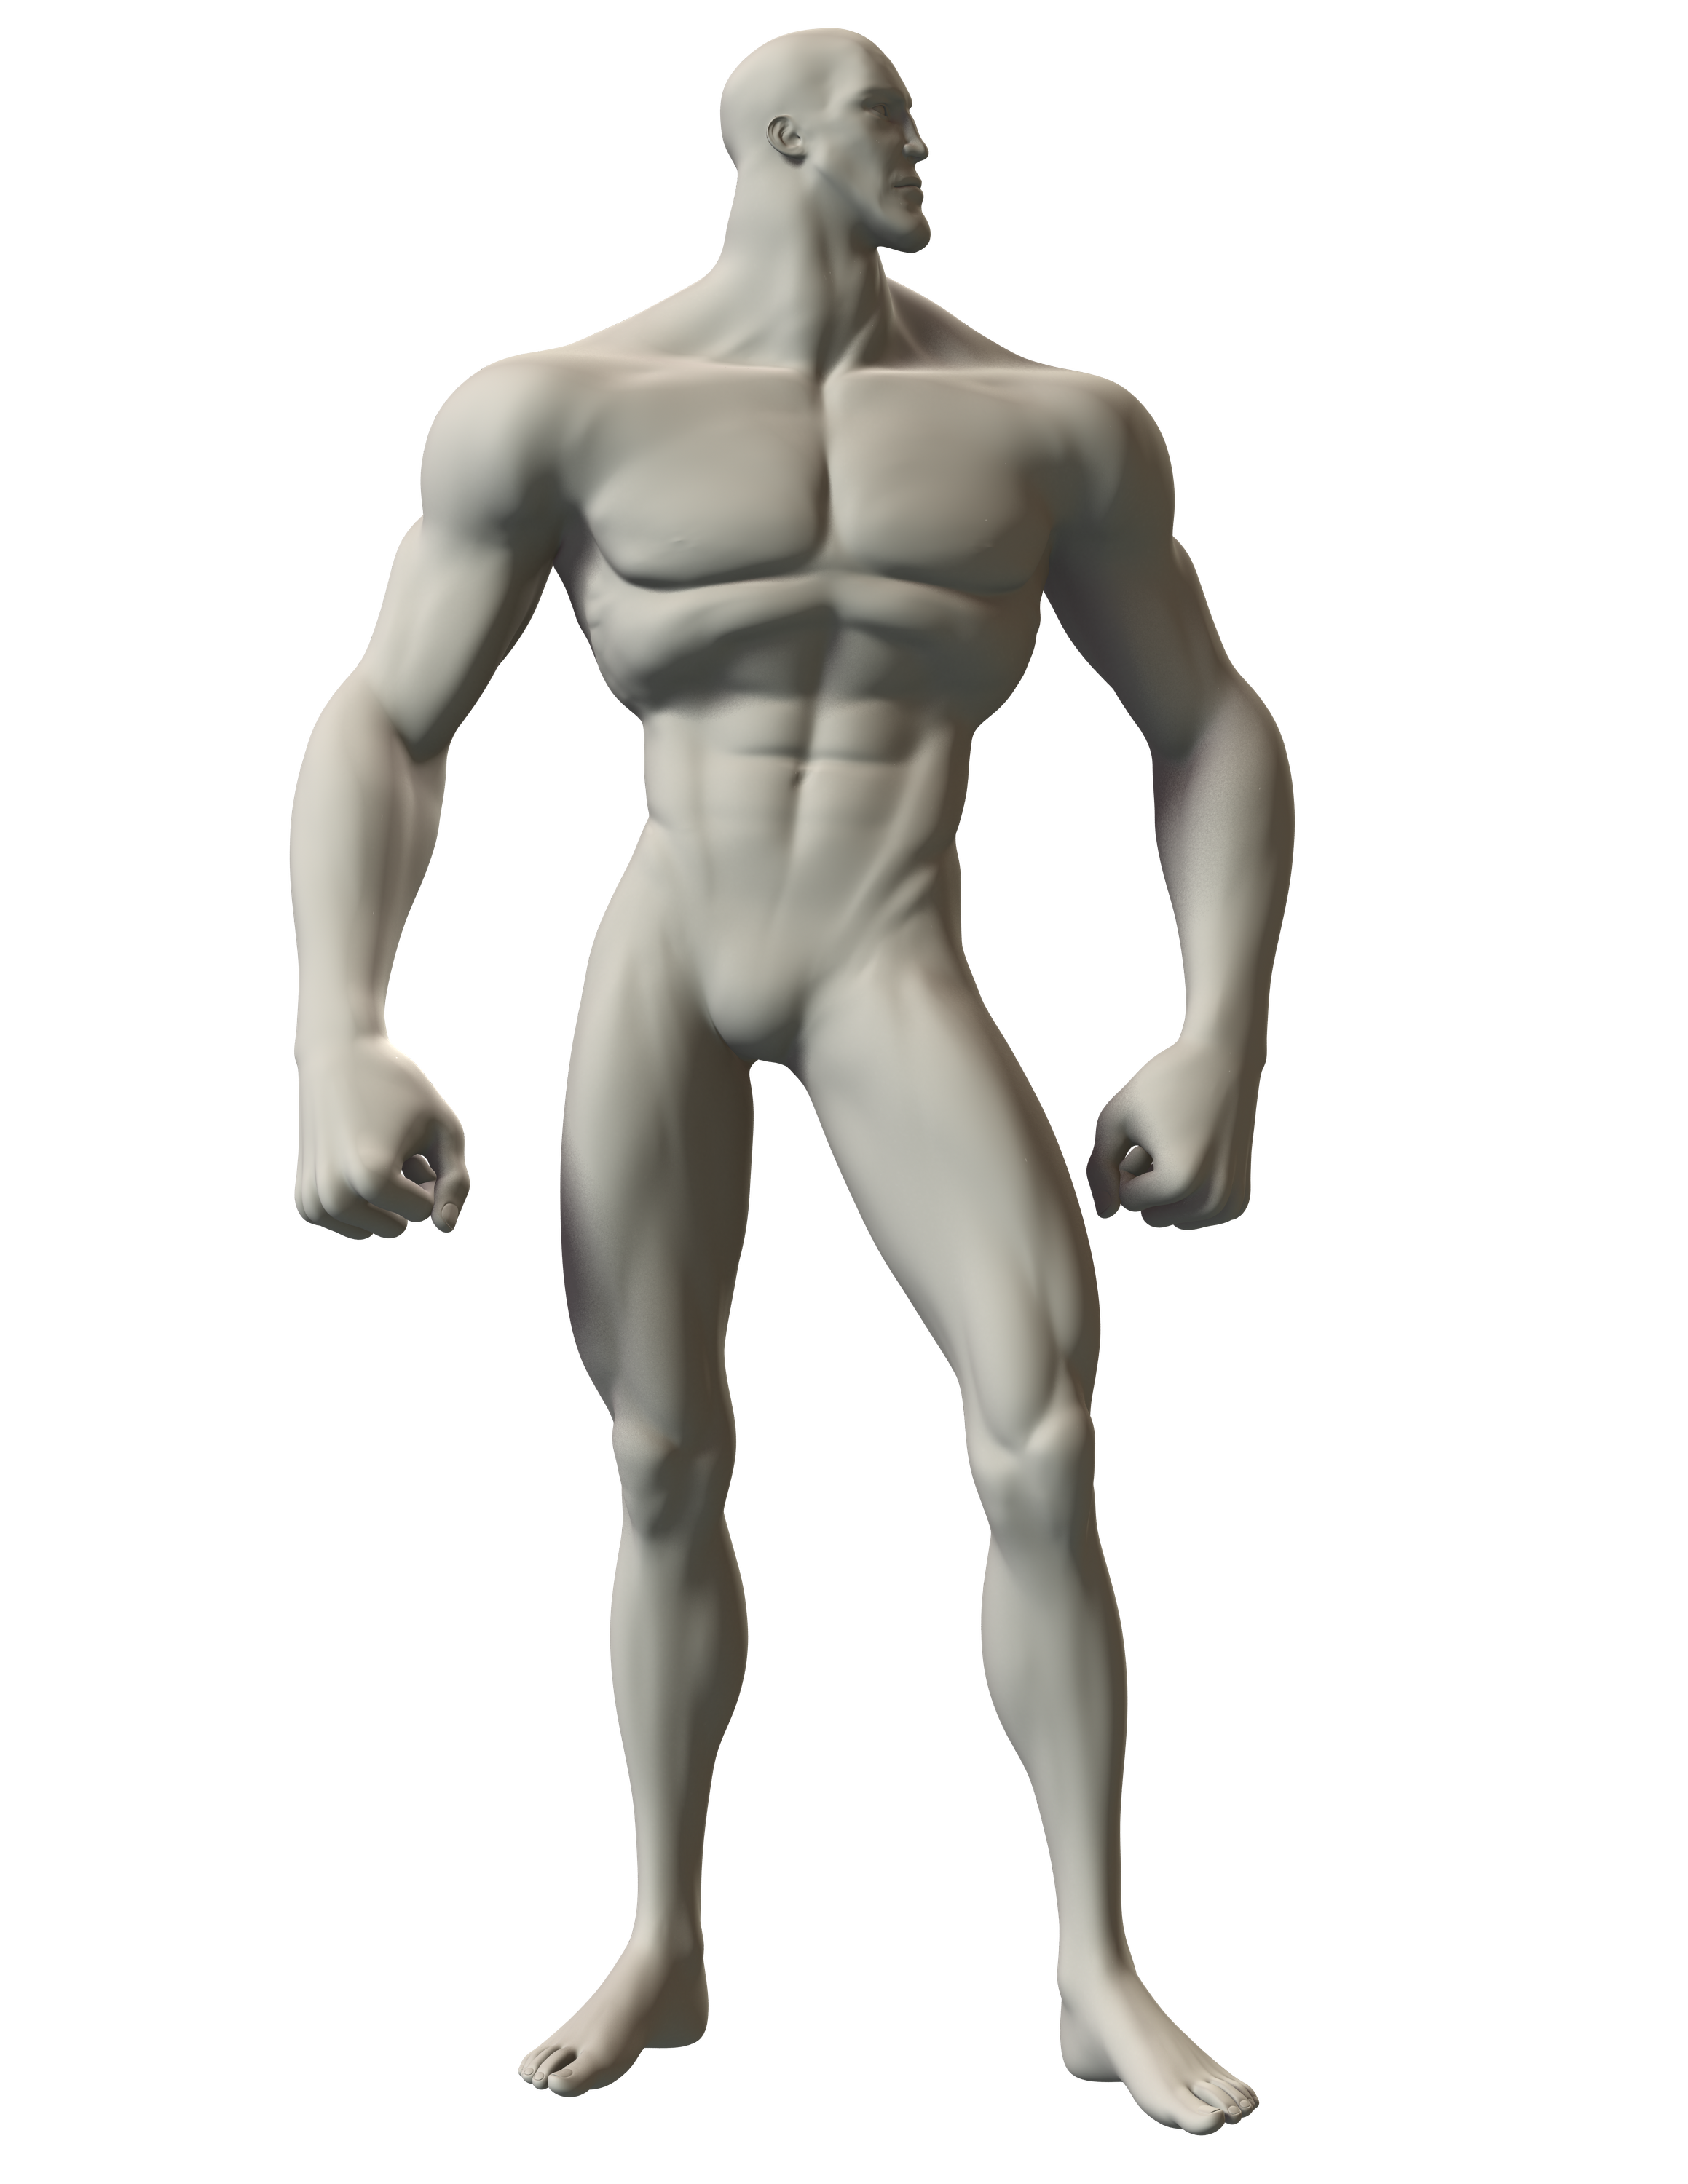 3d Sketch Of A Superhero In A Relaxed Pose Image Is Copyright Free Dance Poses 3d Sketch Human Body